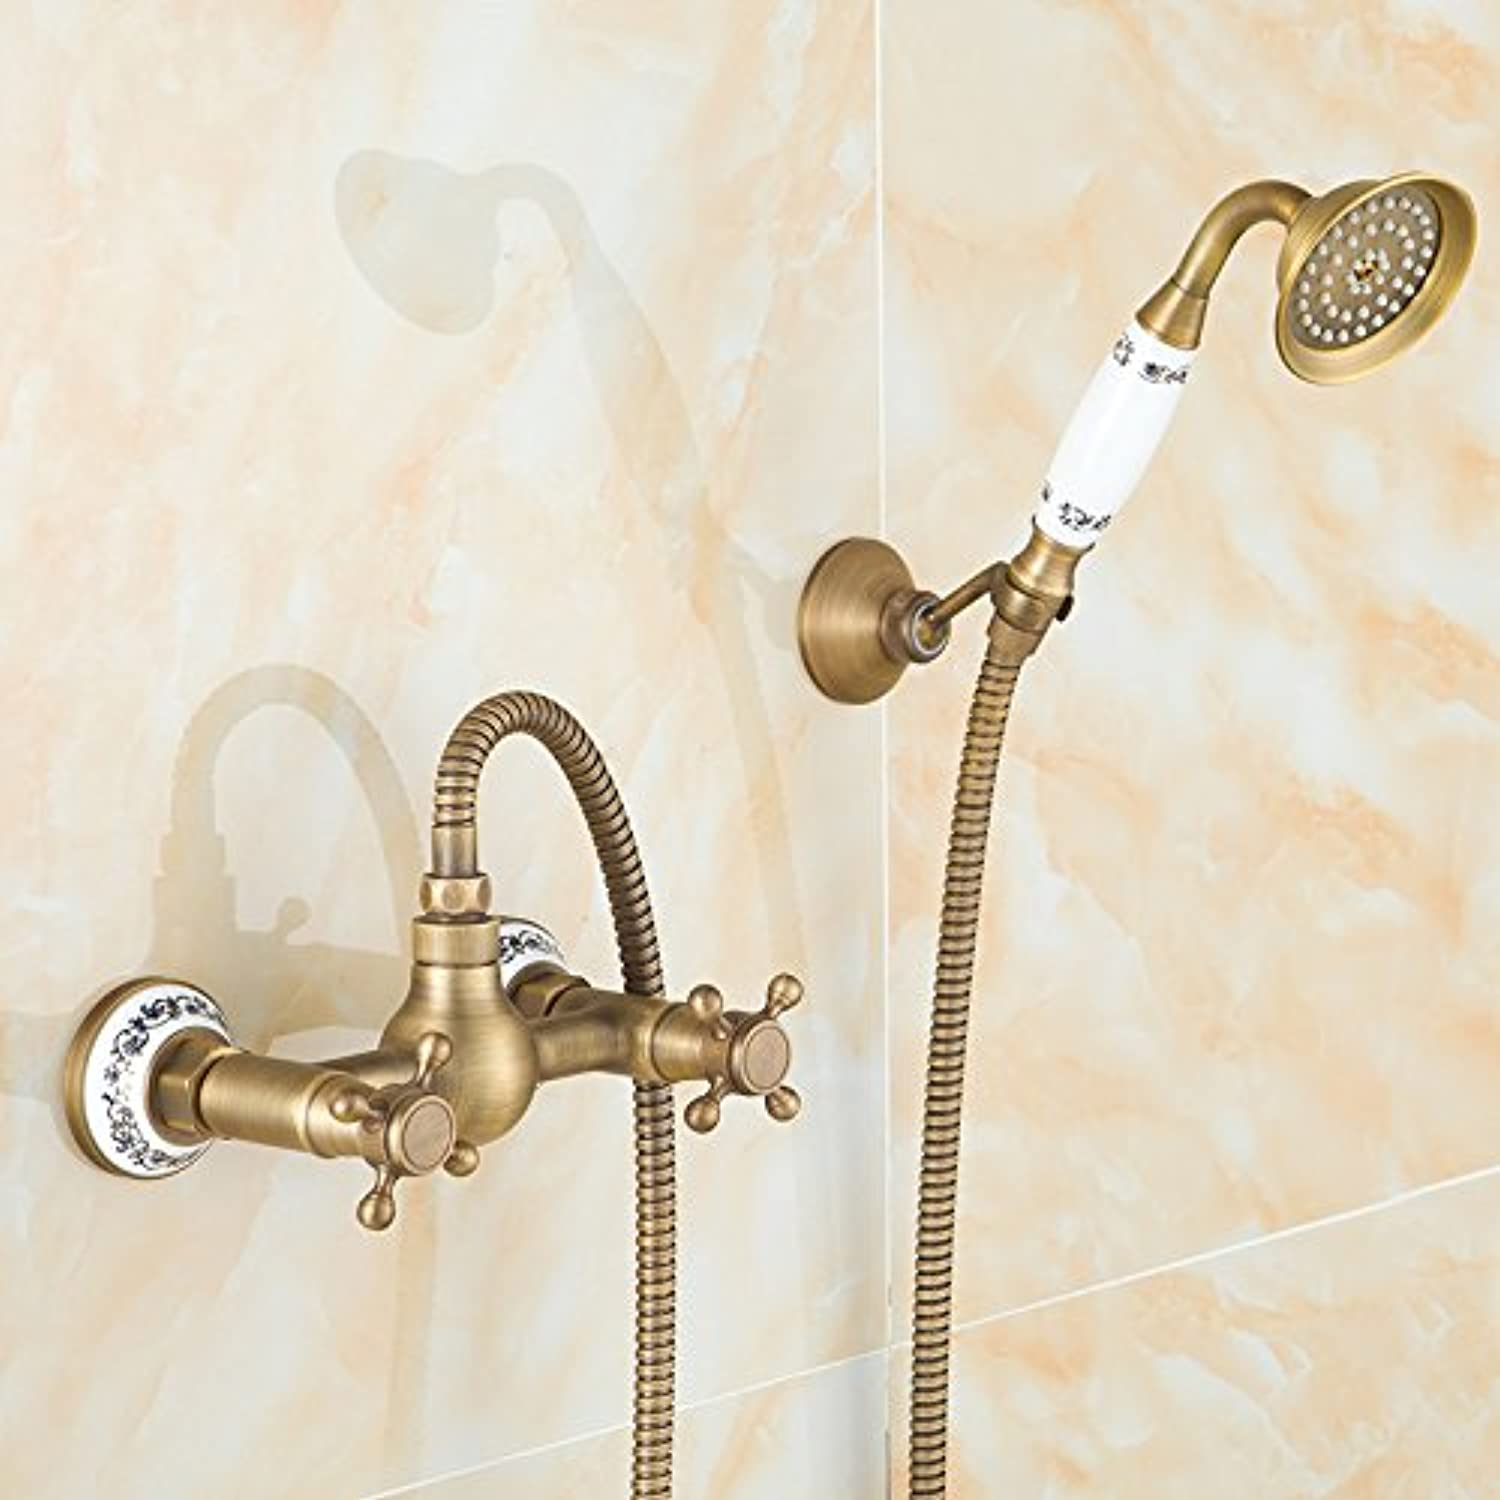 Tourmeler All Bronze Retro Drawing Copper Into The Wall bluee And White Porcelain Hand Shower Shower Wall Hanging Simple Shower Set